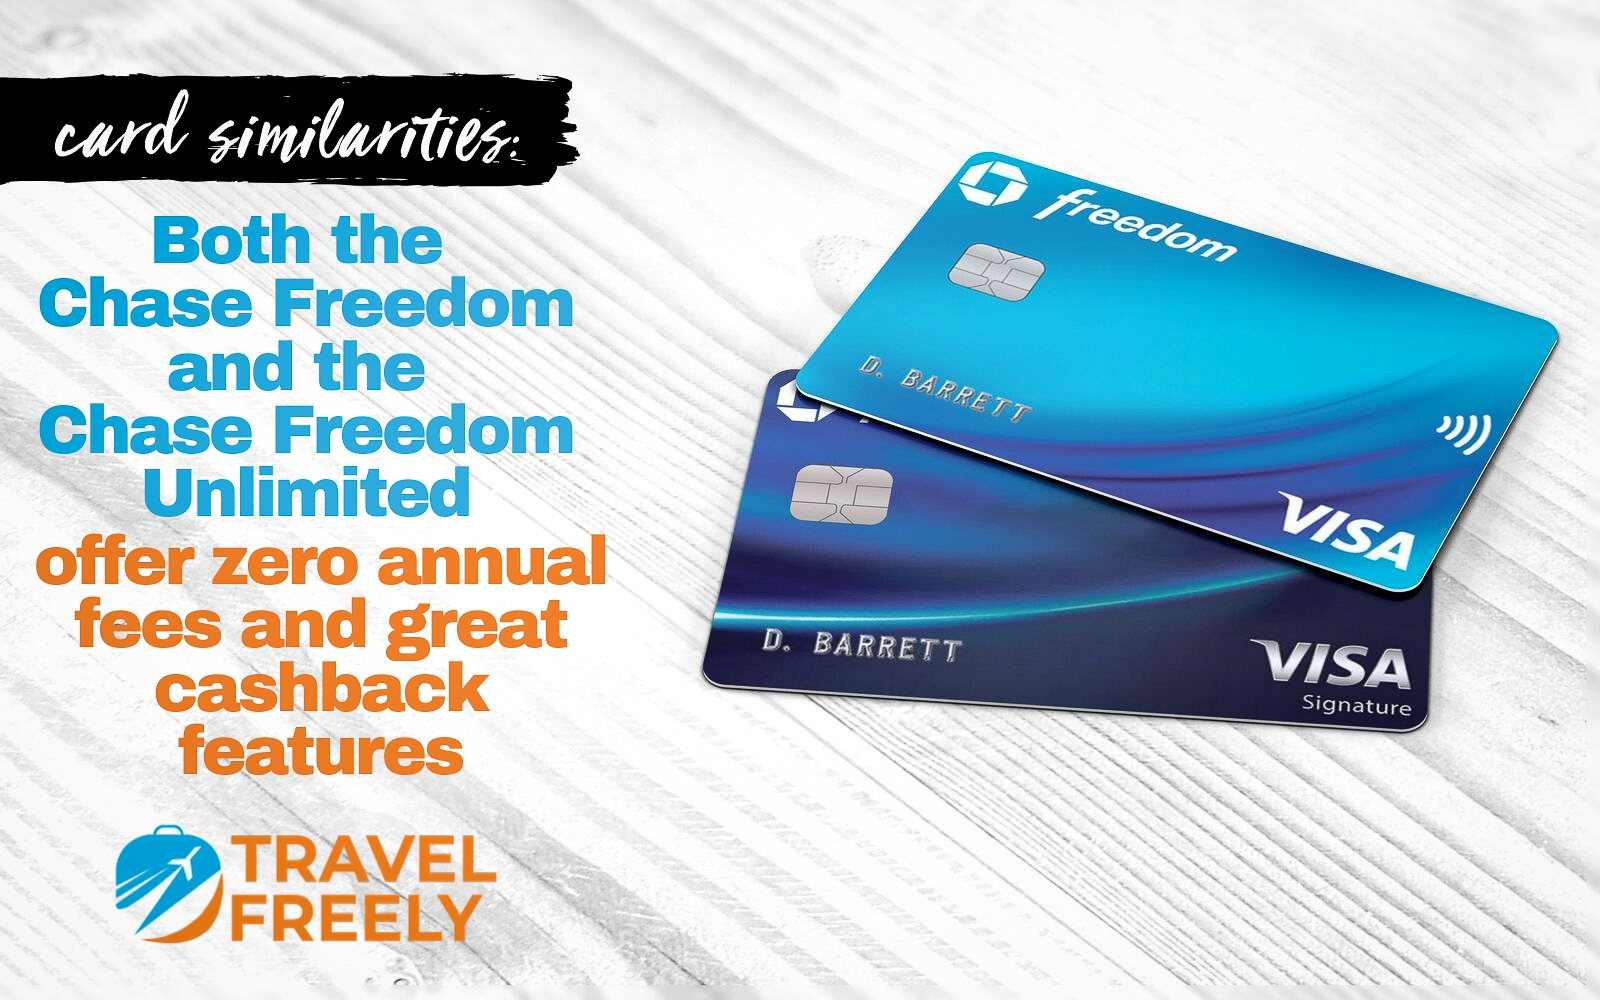 Chase Freedom and Chase Freedom Unlimited both offer zero annual fees and great cashback features